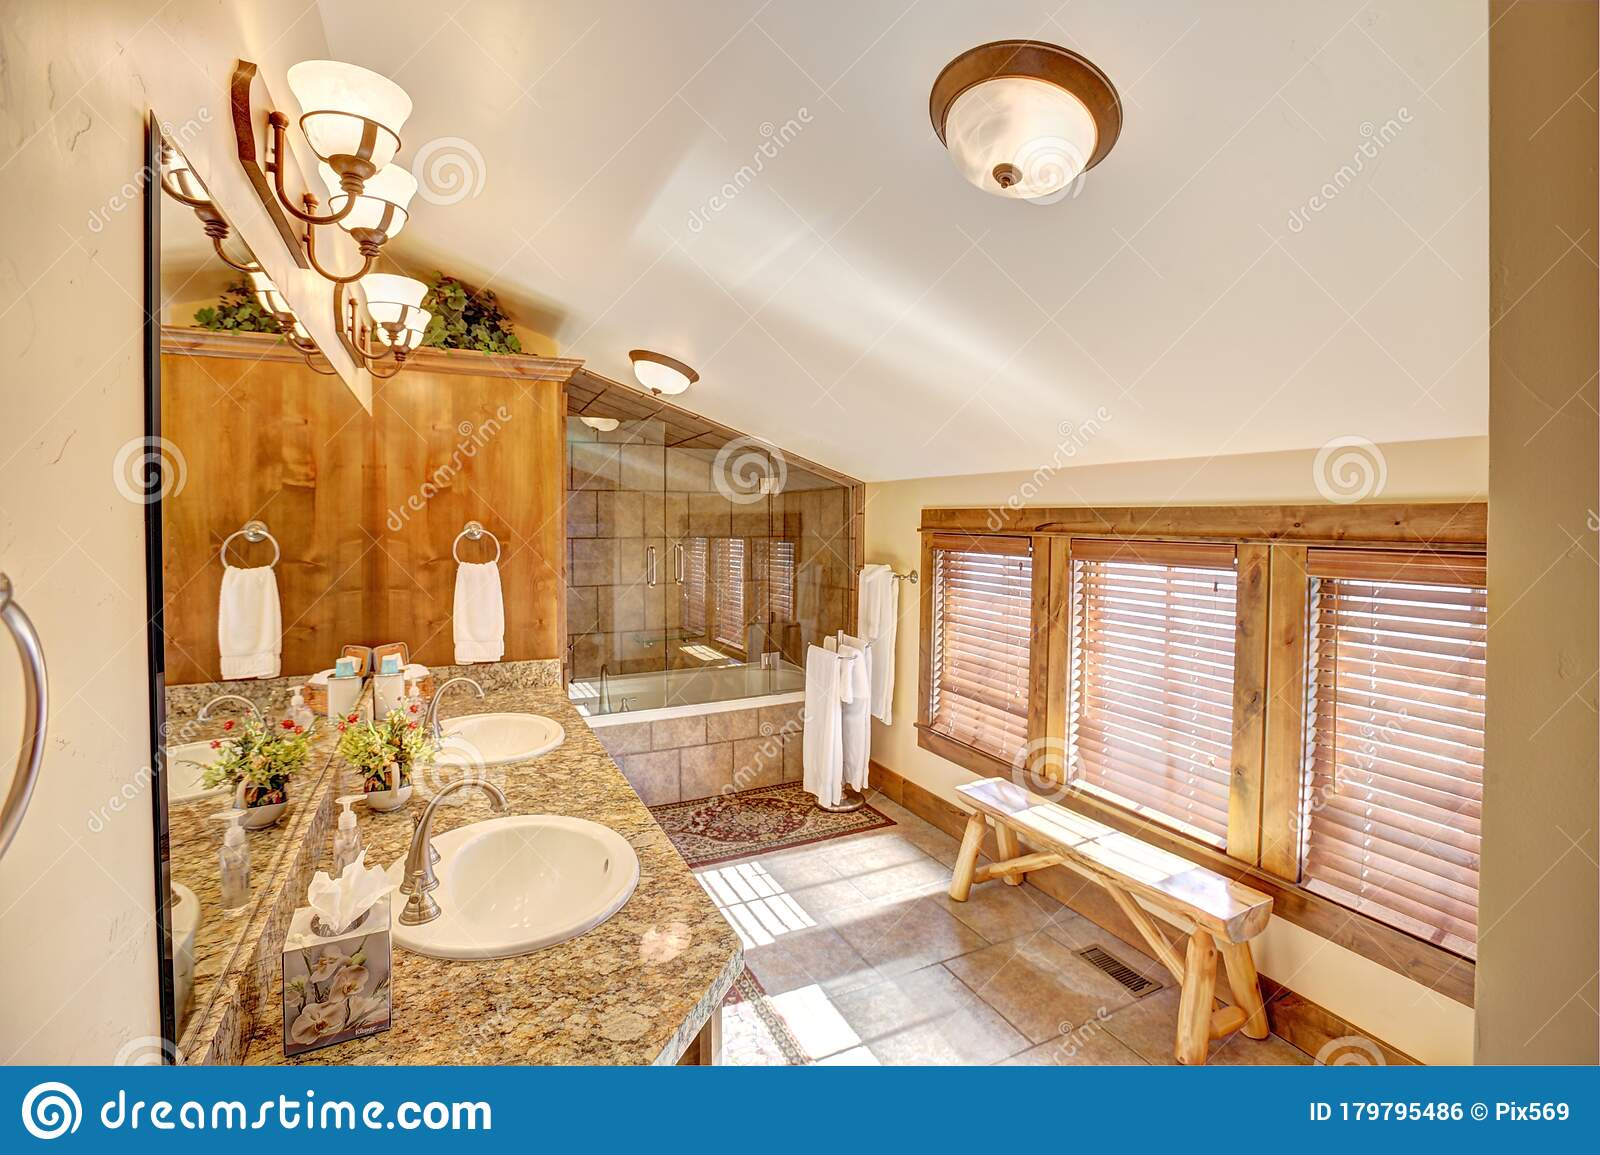 A Modern Log Cabin Bathroom Stock Photo Image Of Beautiful Architecture 179795486